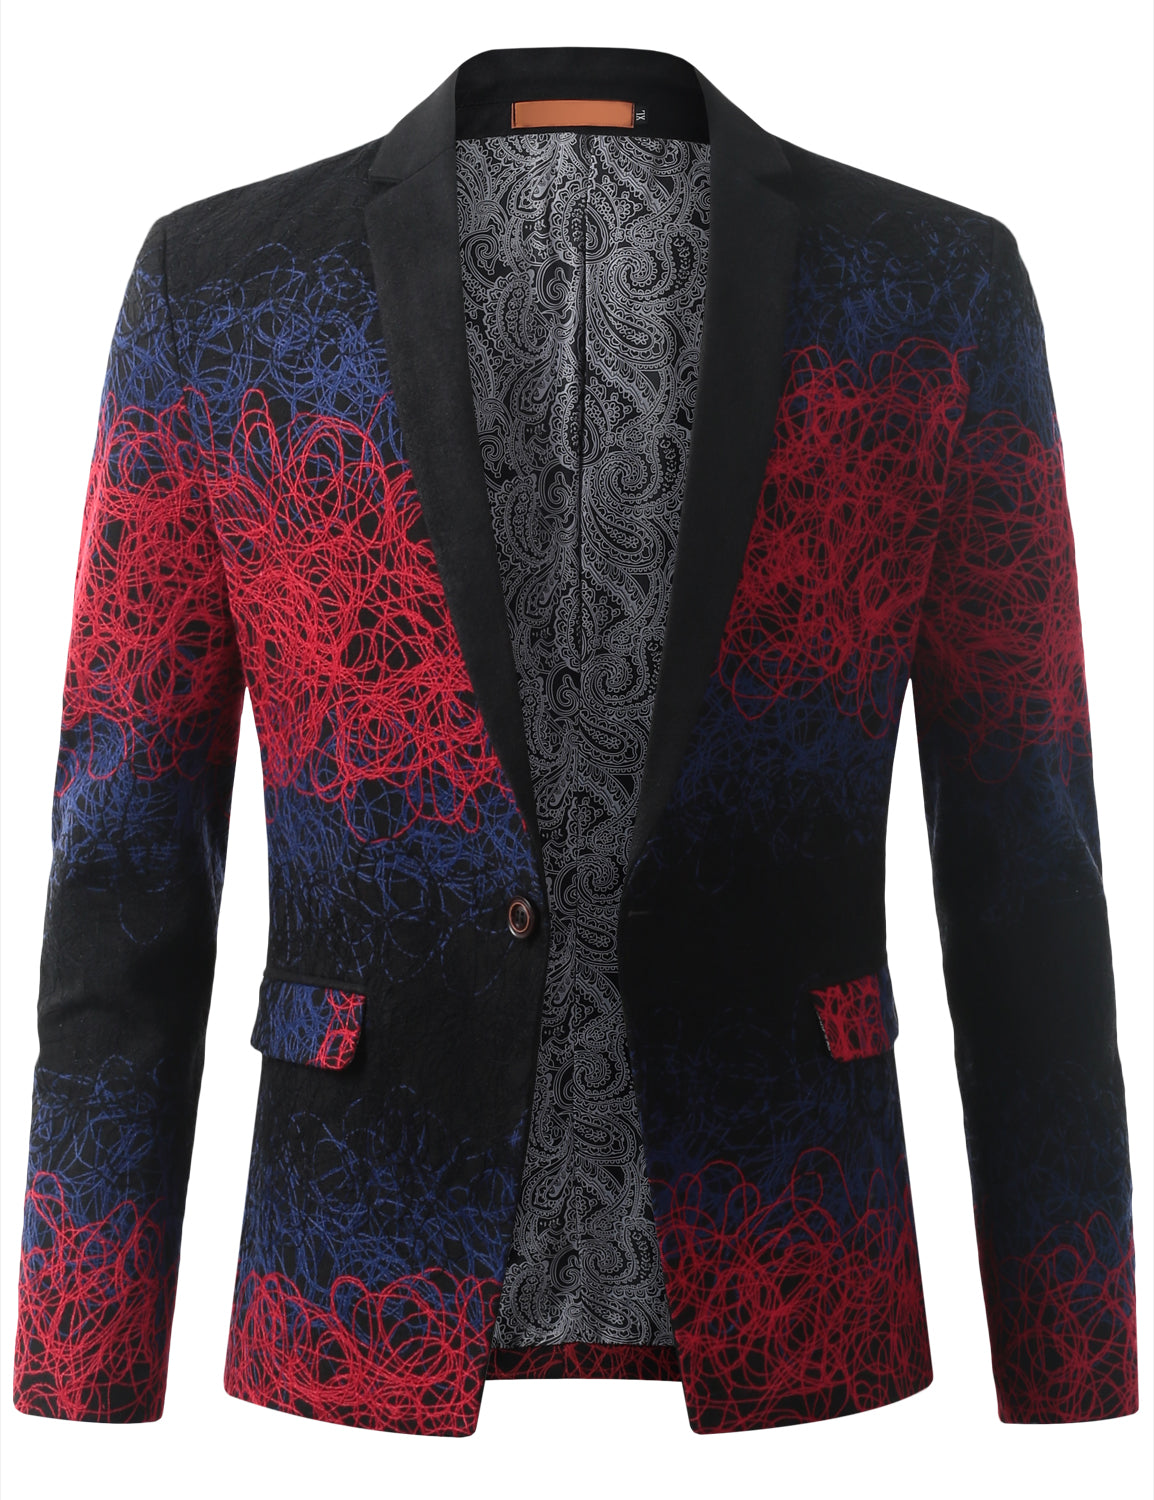 REDBLUE Mens Multi Tone Gradient Extra Slim Fit Blazer Jacket